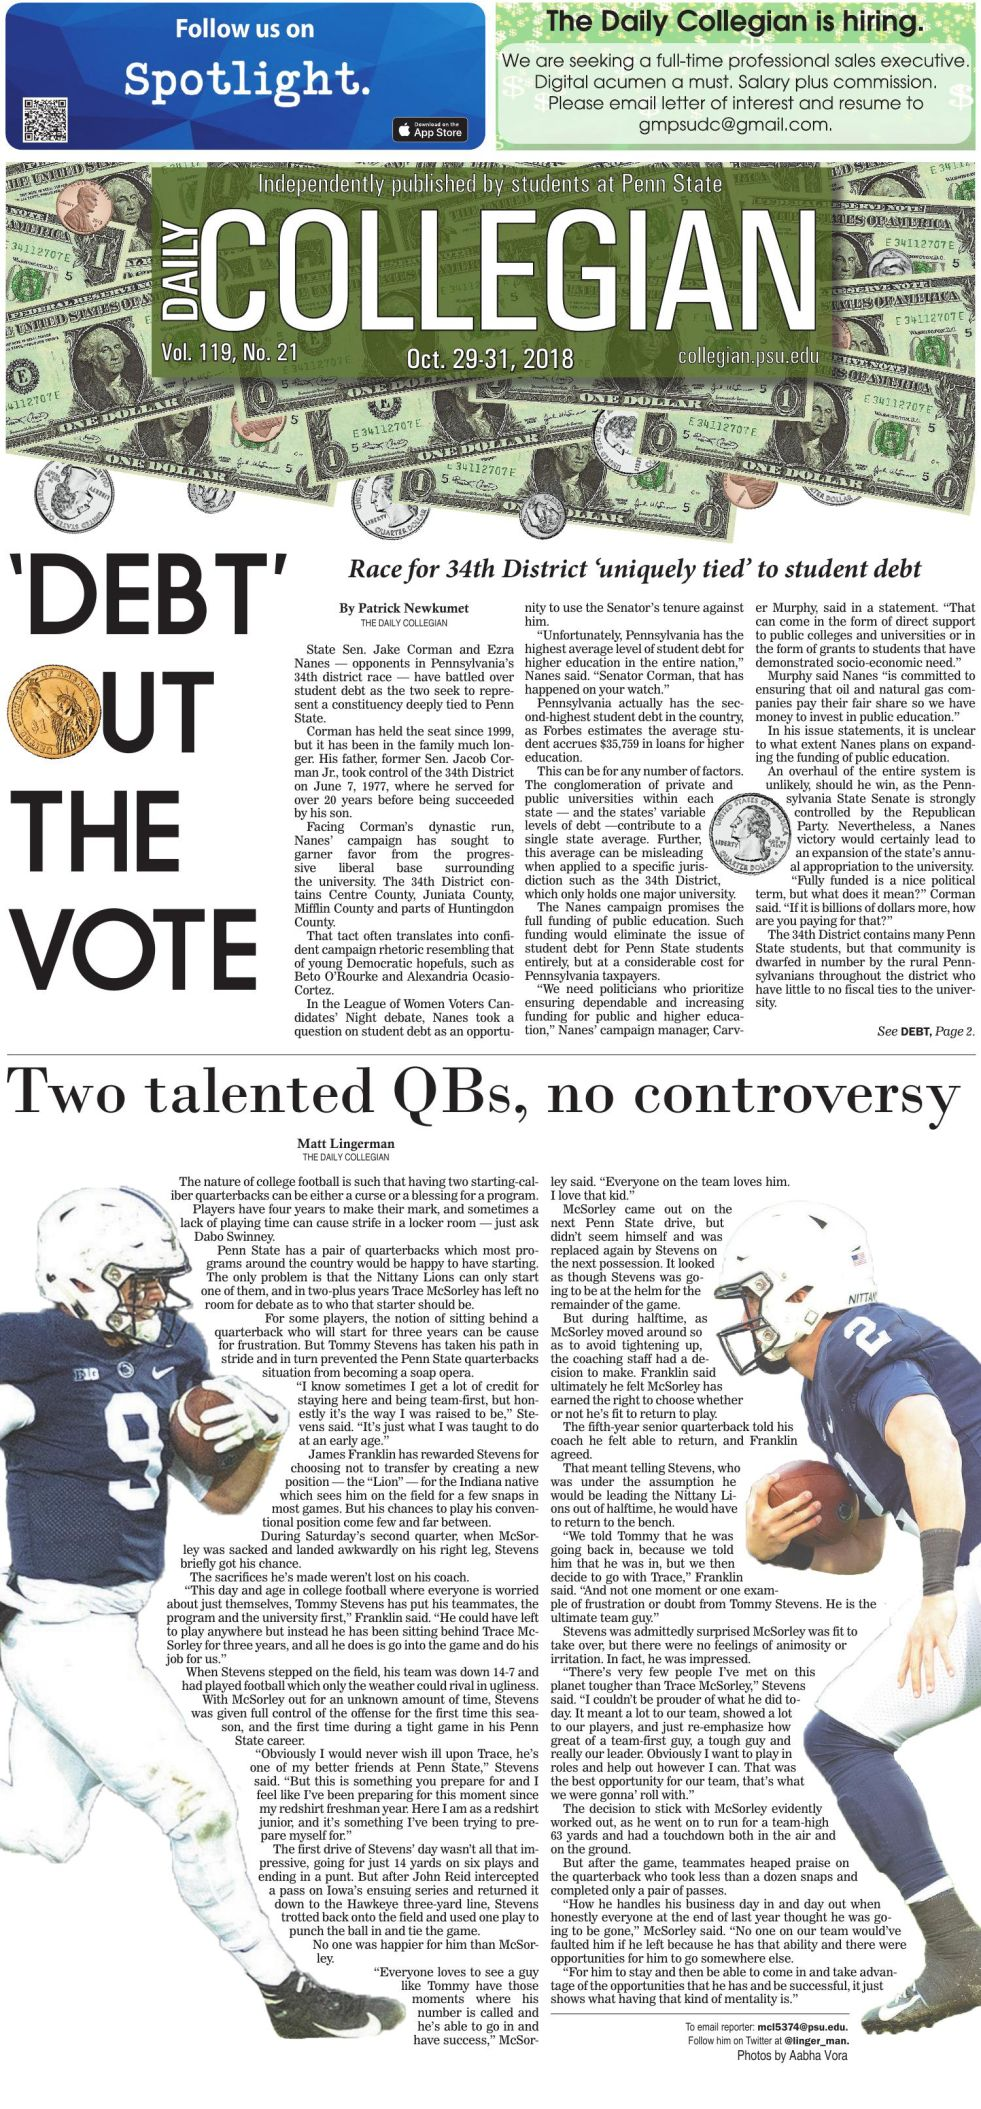 The Daily Collegian for Oct. 29, 2018